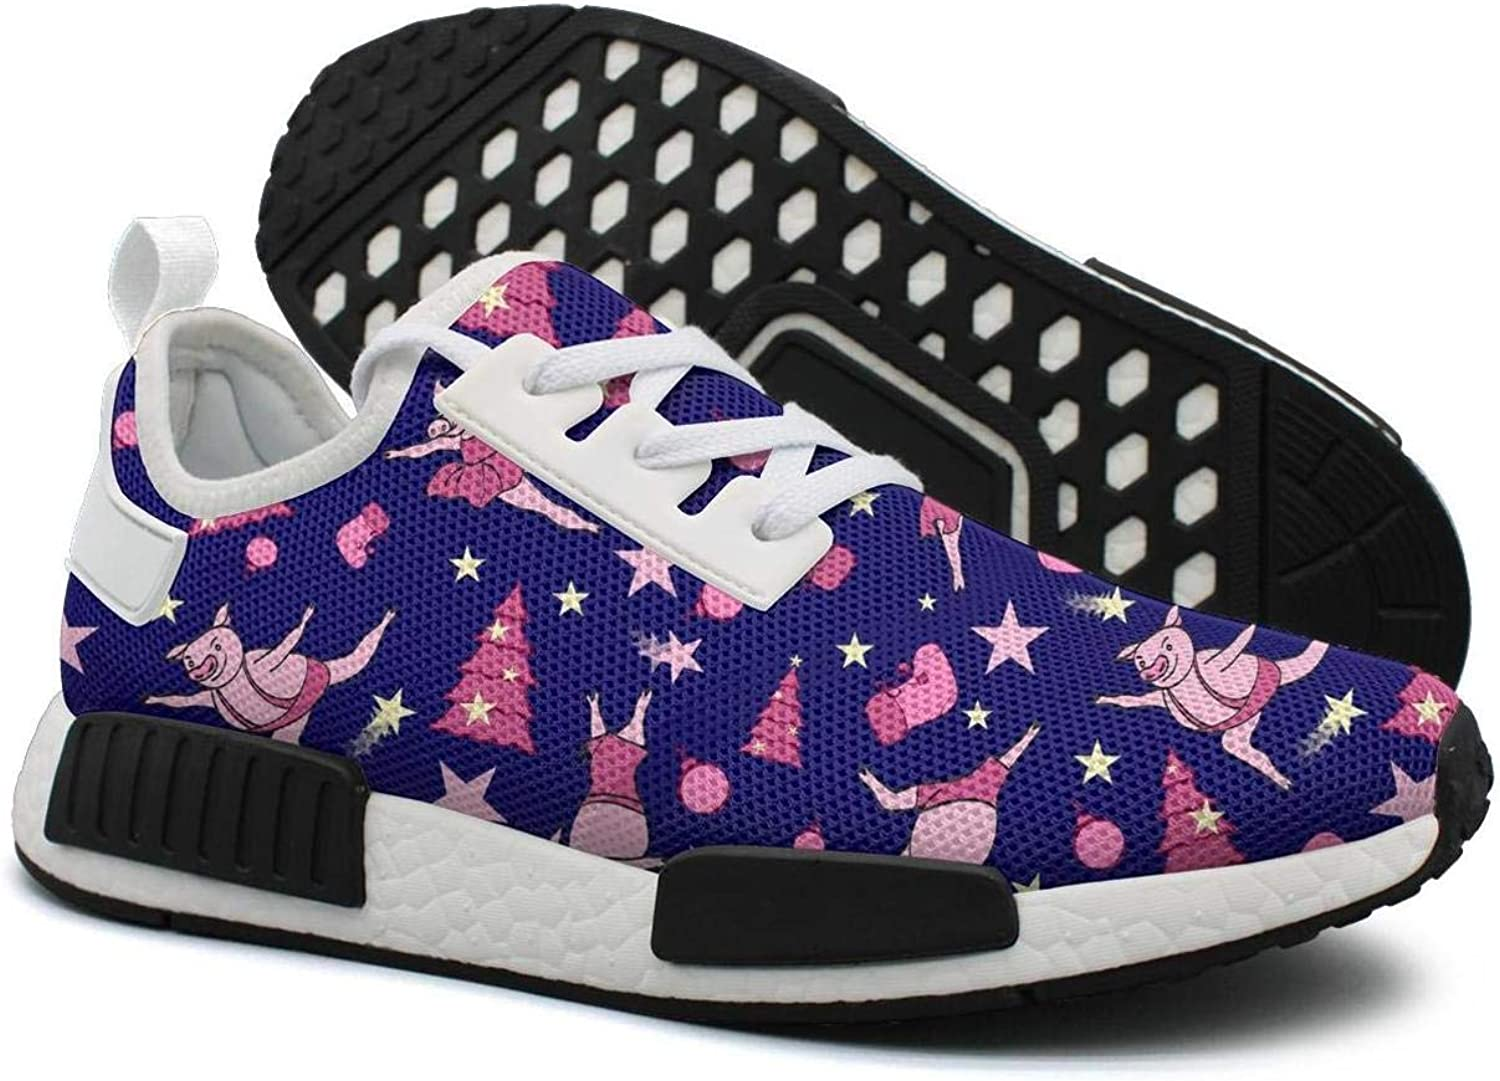 Pduiqo Dancing Pig Next to The Pink Christmas Tree Women's Unique Lightweight Sneakers shoes Gym Outdoor Walking shoes